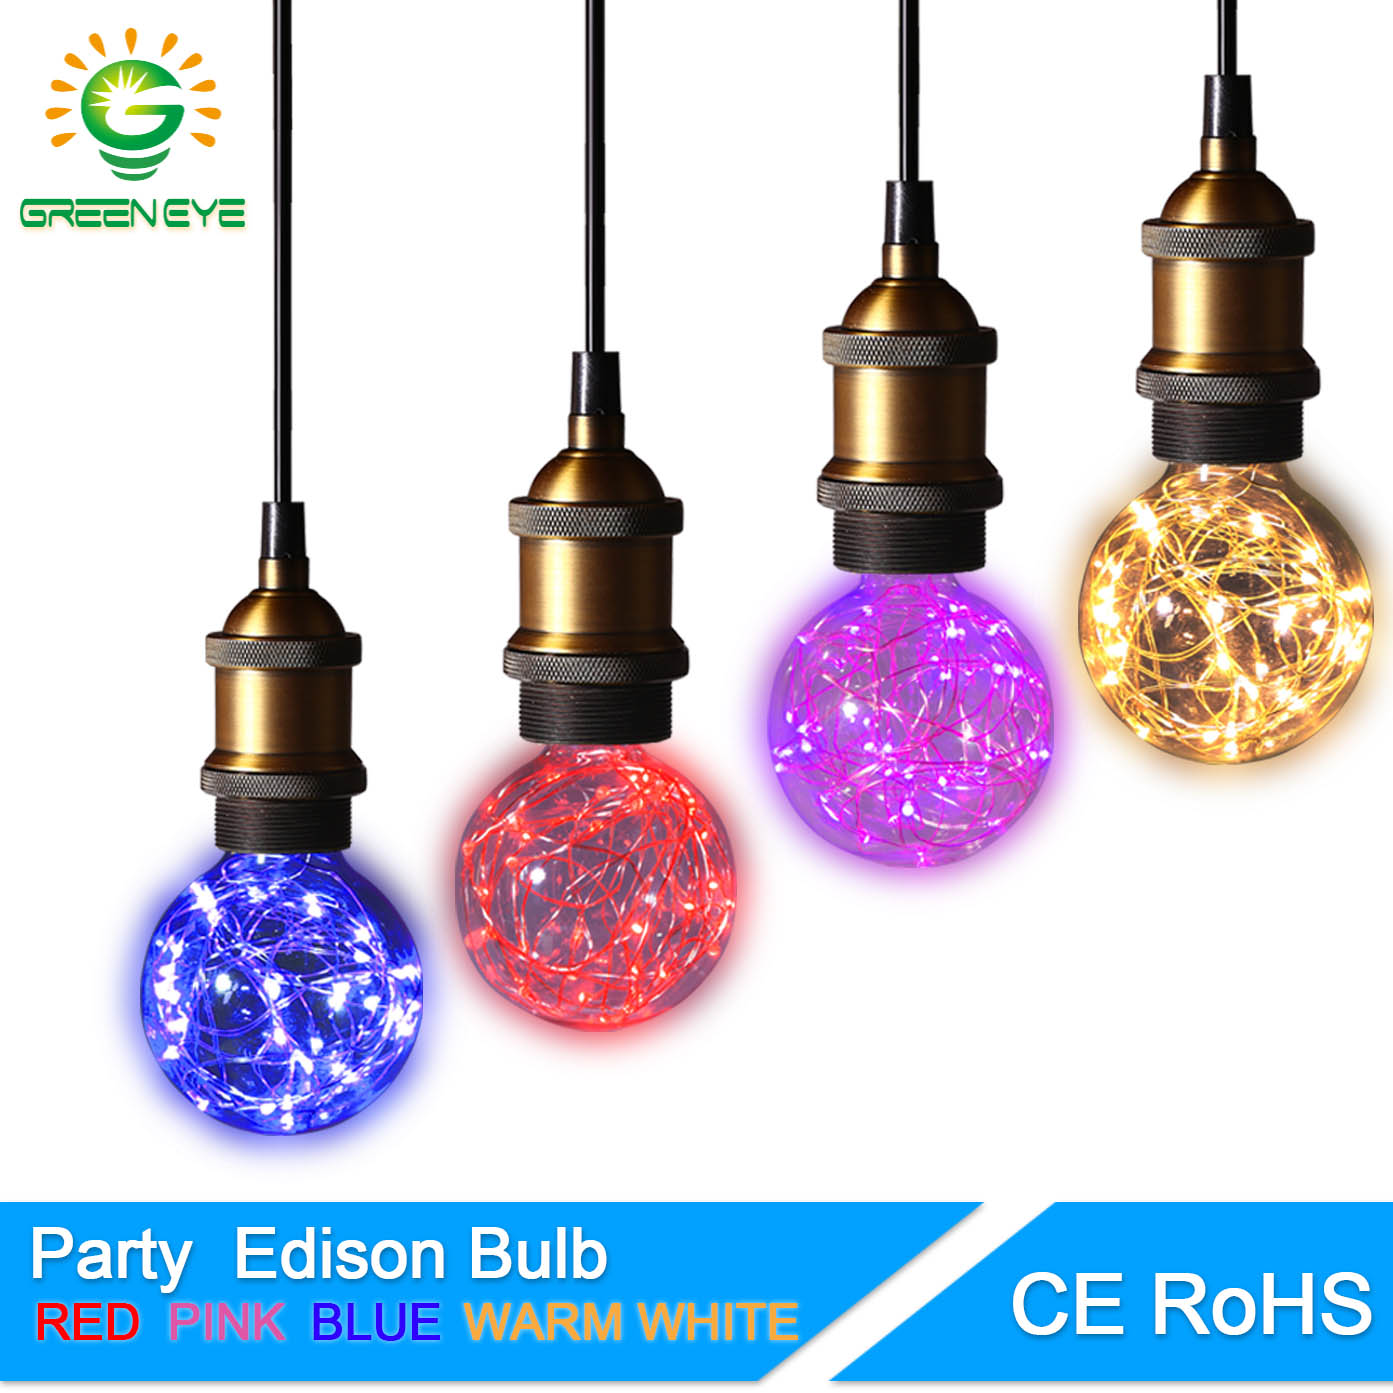 GreenEye Fairy Elf Design LED Bulb Edison G95 E27 220V 5w RGB String Light Filament LED Lamp Home Lighting Retro Colour Vintage greeneye 1 4pcs color led bulb edison 220v e27 filament led lamp light st64 retro green blue red pink warm white ampoule lampara